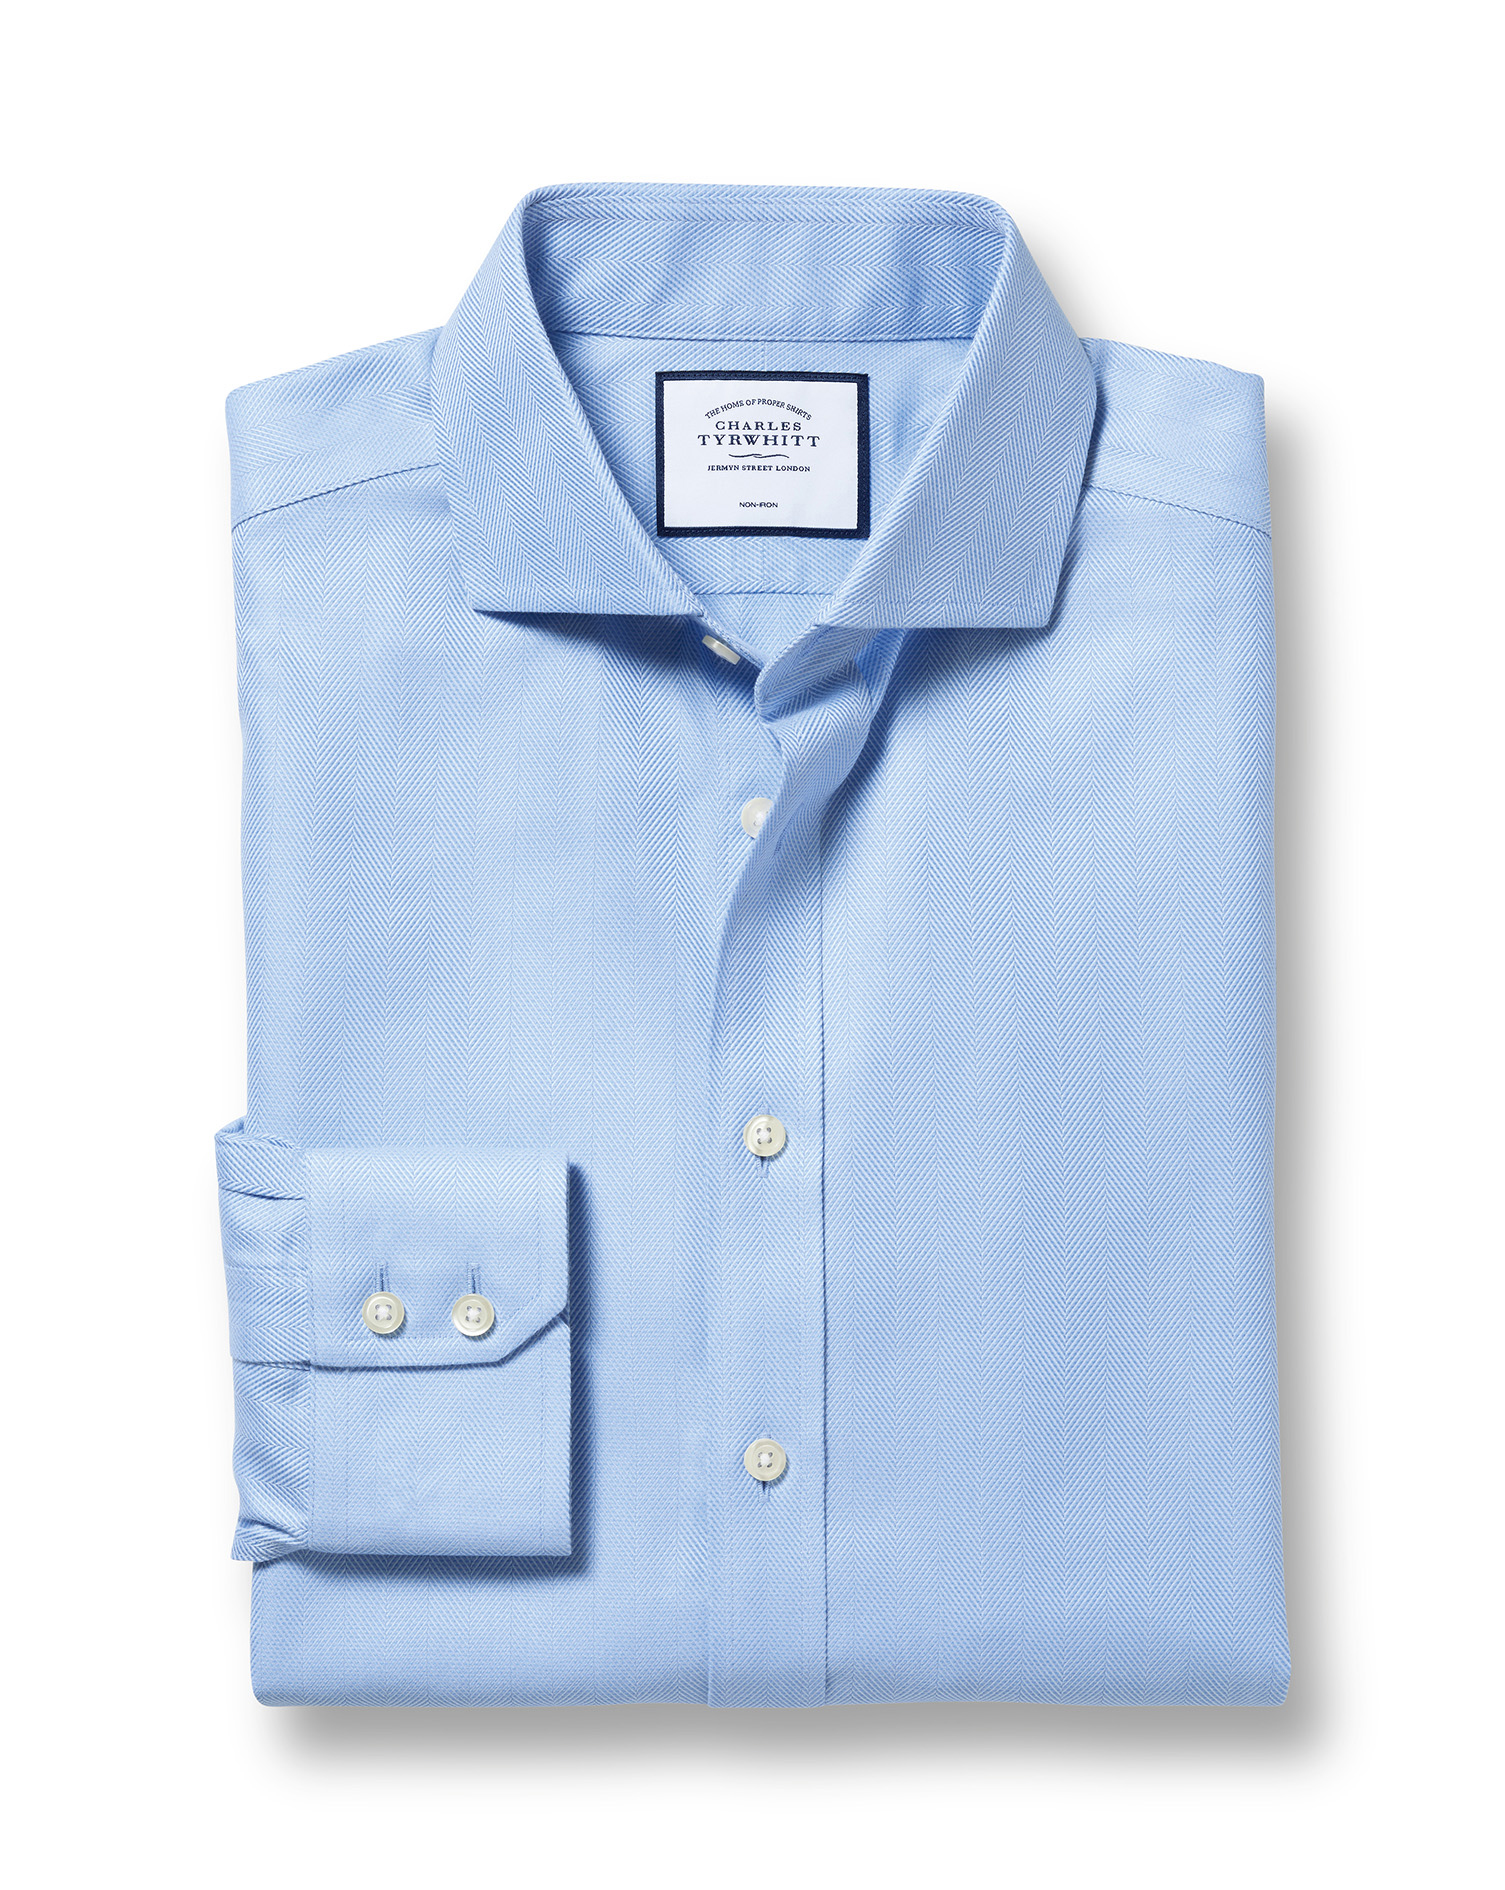 Extra Slim Fit Cutaway Non-Iron Herringbone Sky Blue Cotton Formal Shirt Single Cuff Size 16.5/38 by